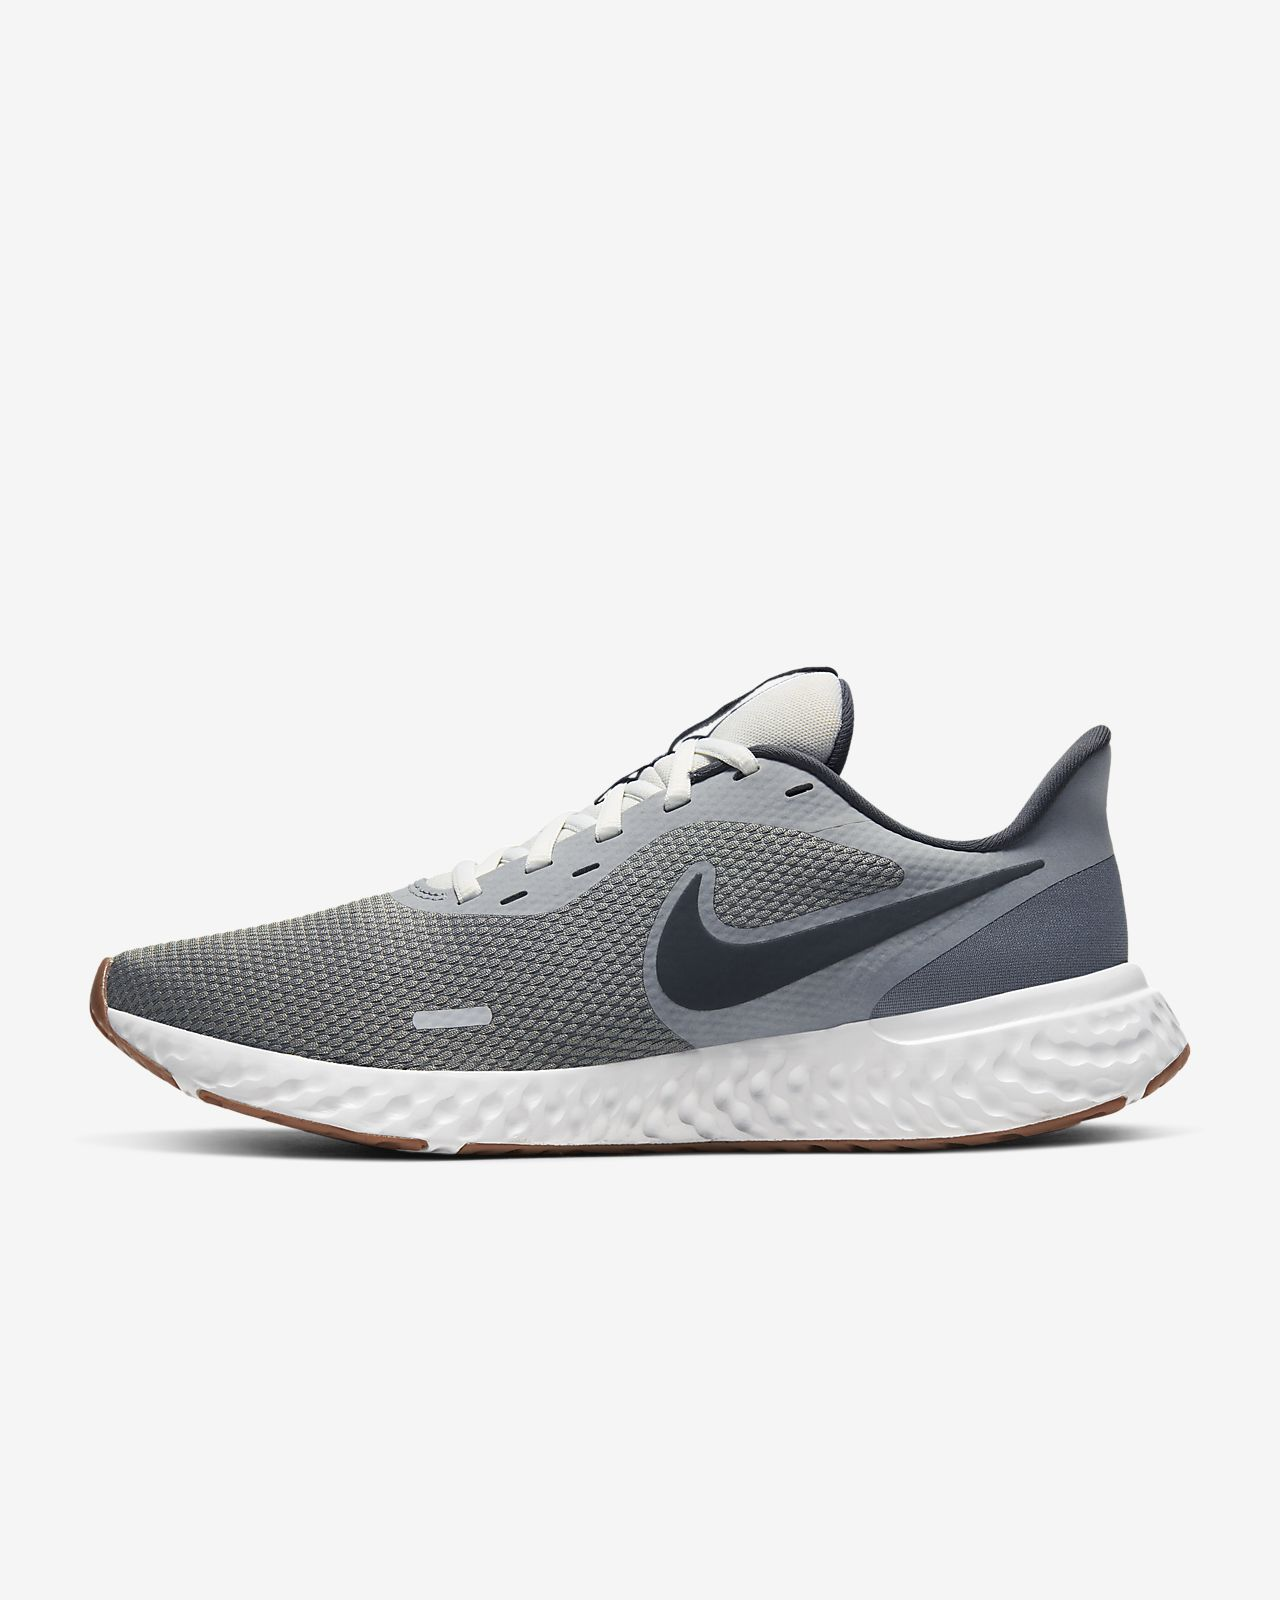 nike revolution 2 mens running shoes review